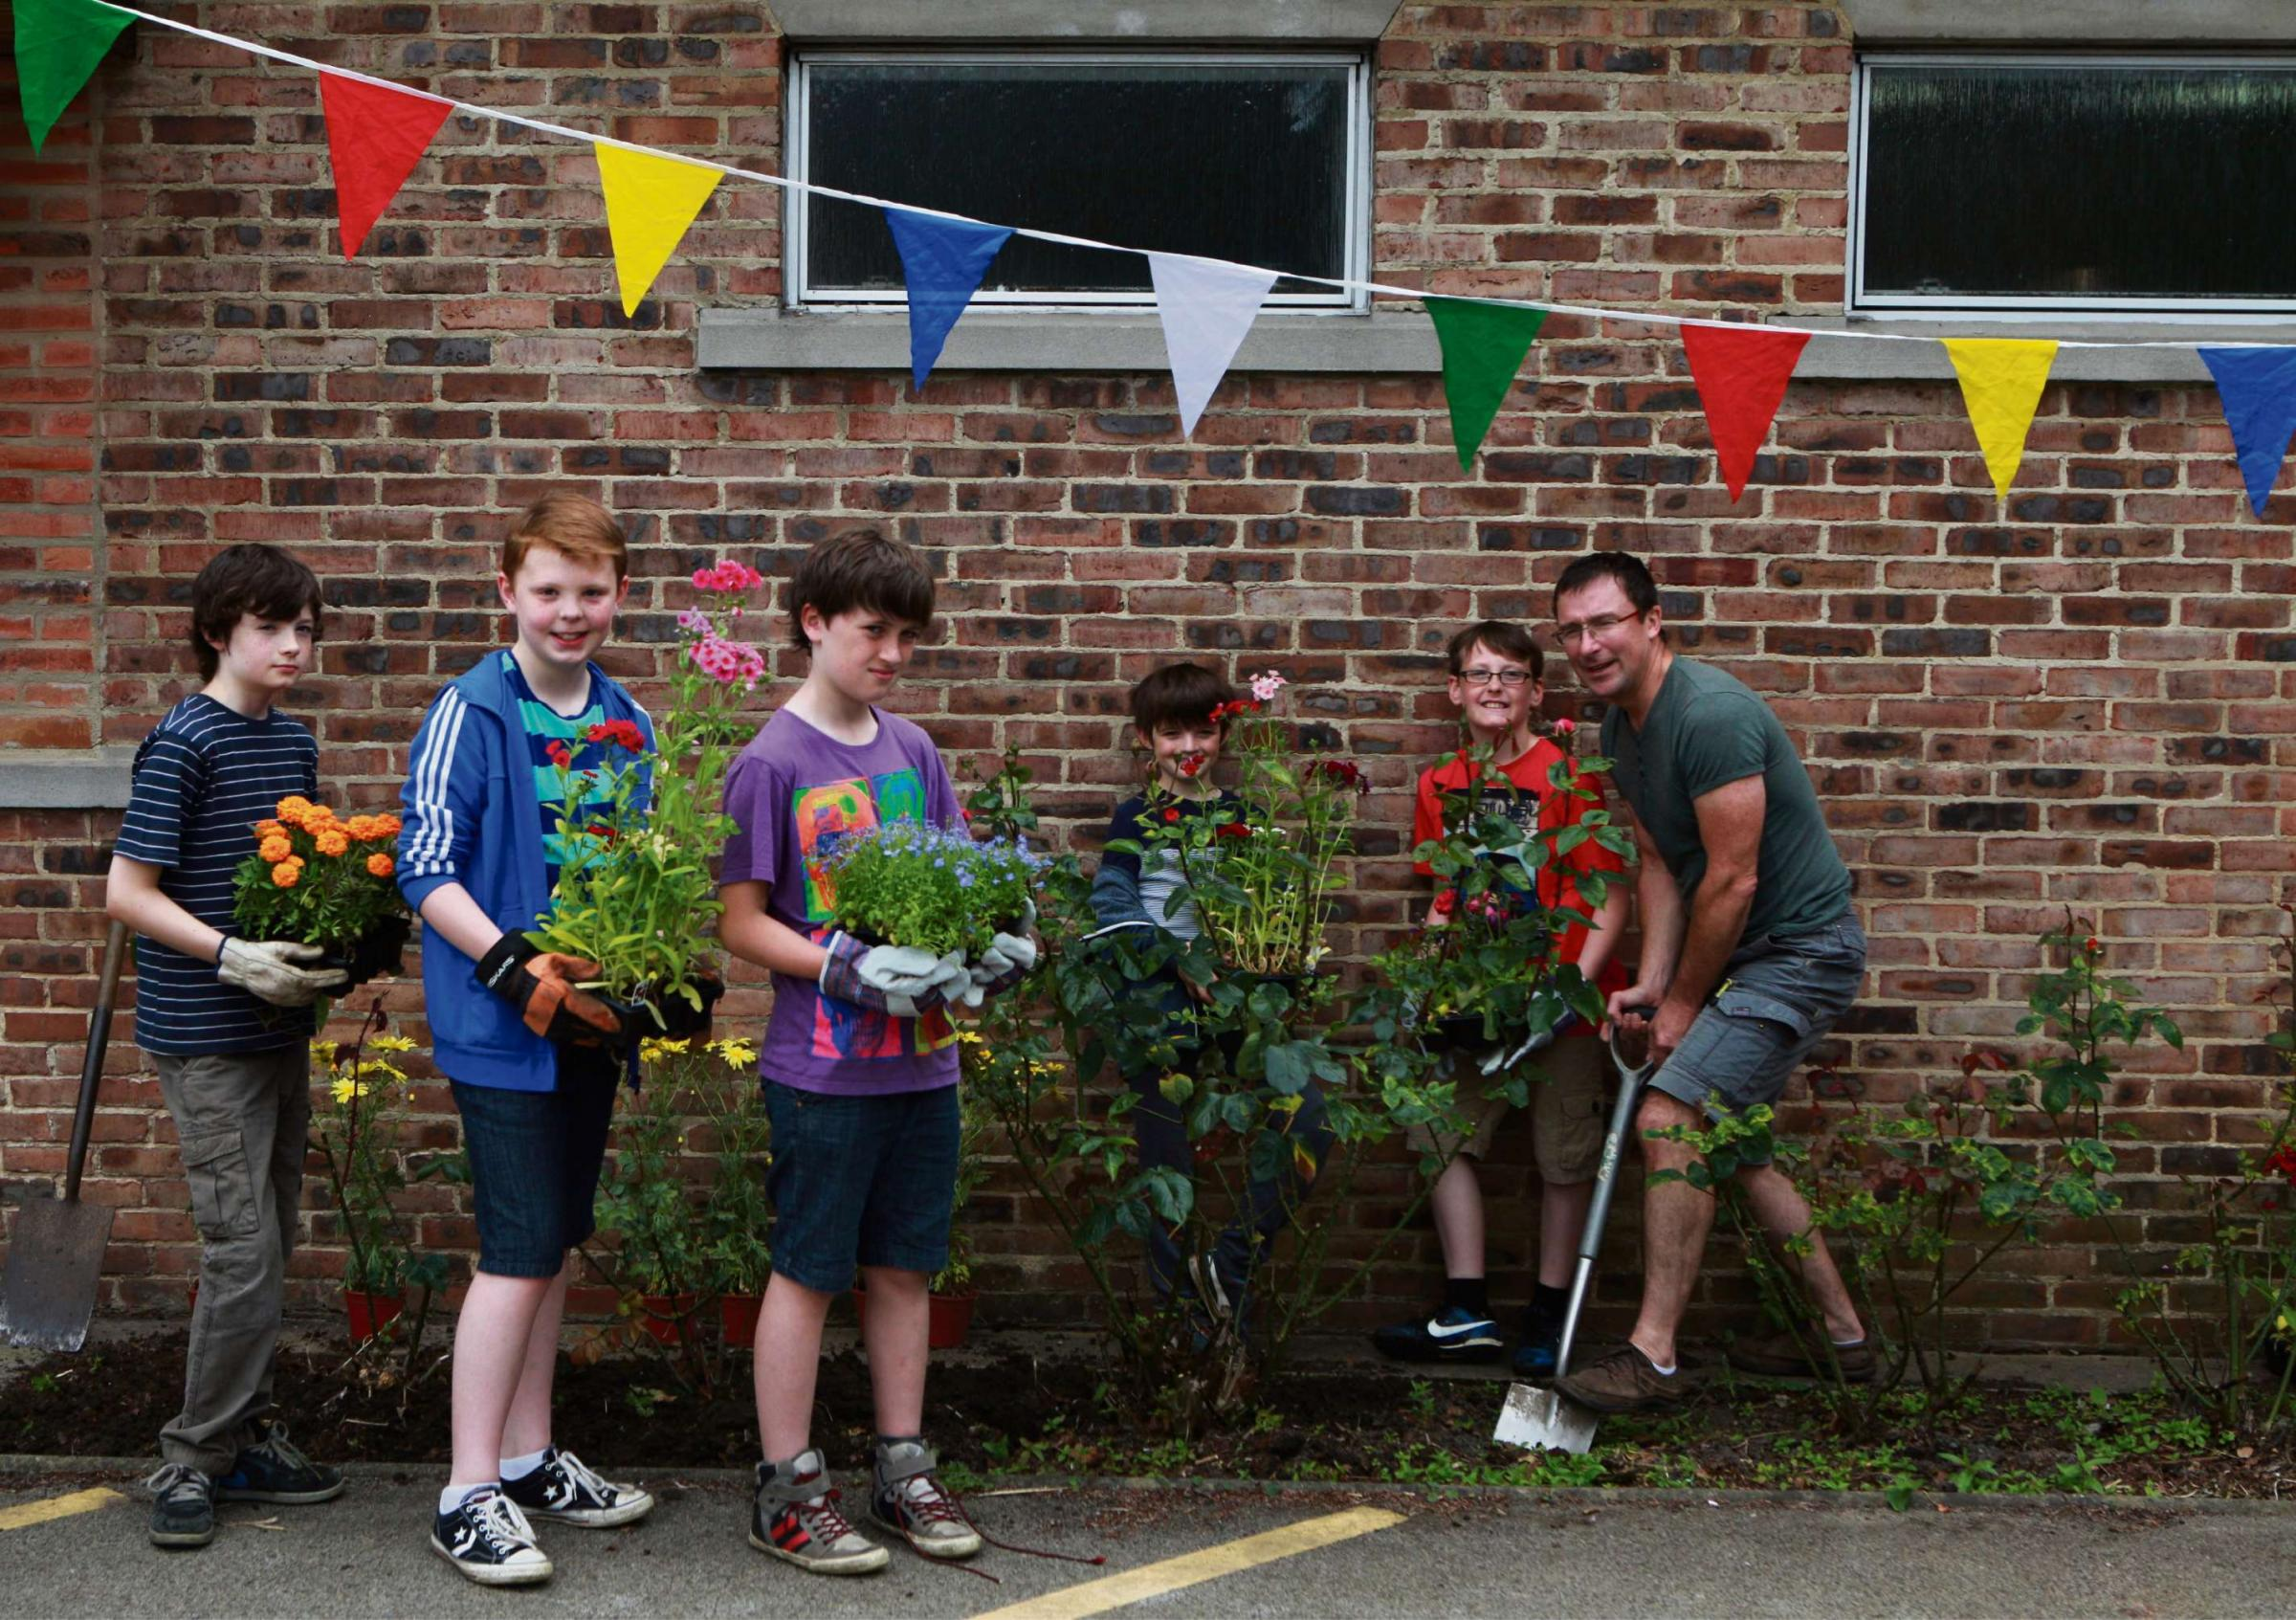 BIG CLEAN: A community comes together for big spring clean, decoration at St Augustine's Parish Centre. Picture: SAR